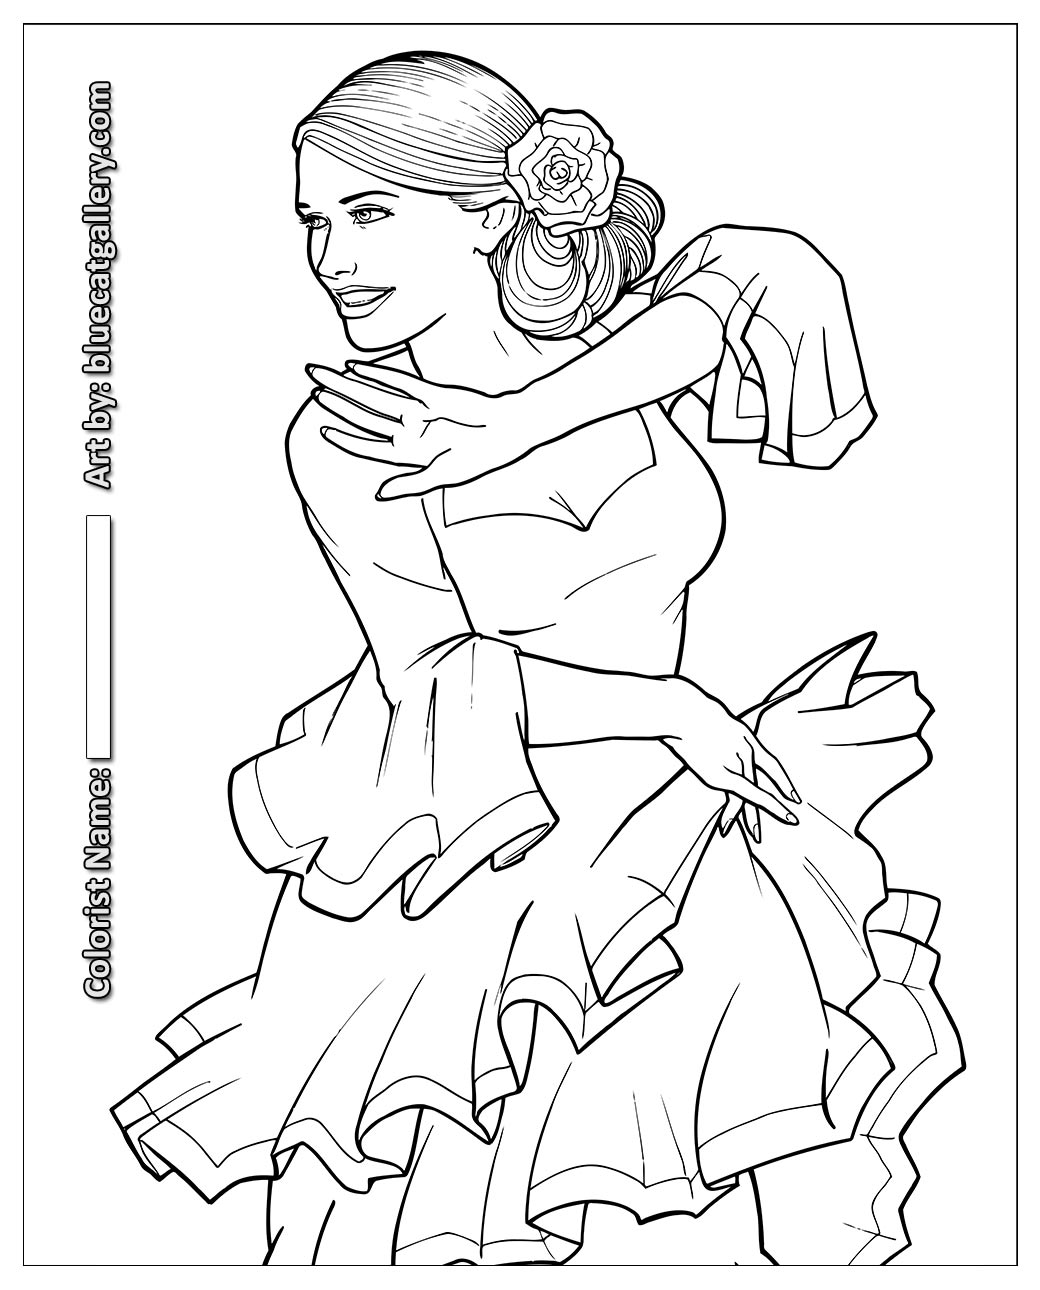 Hamilton Coloring Pages At Getdrawings Com Free For Personal Use